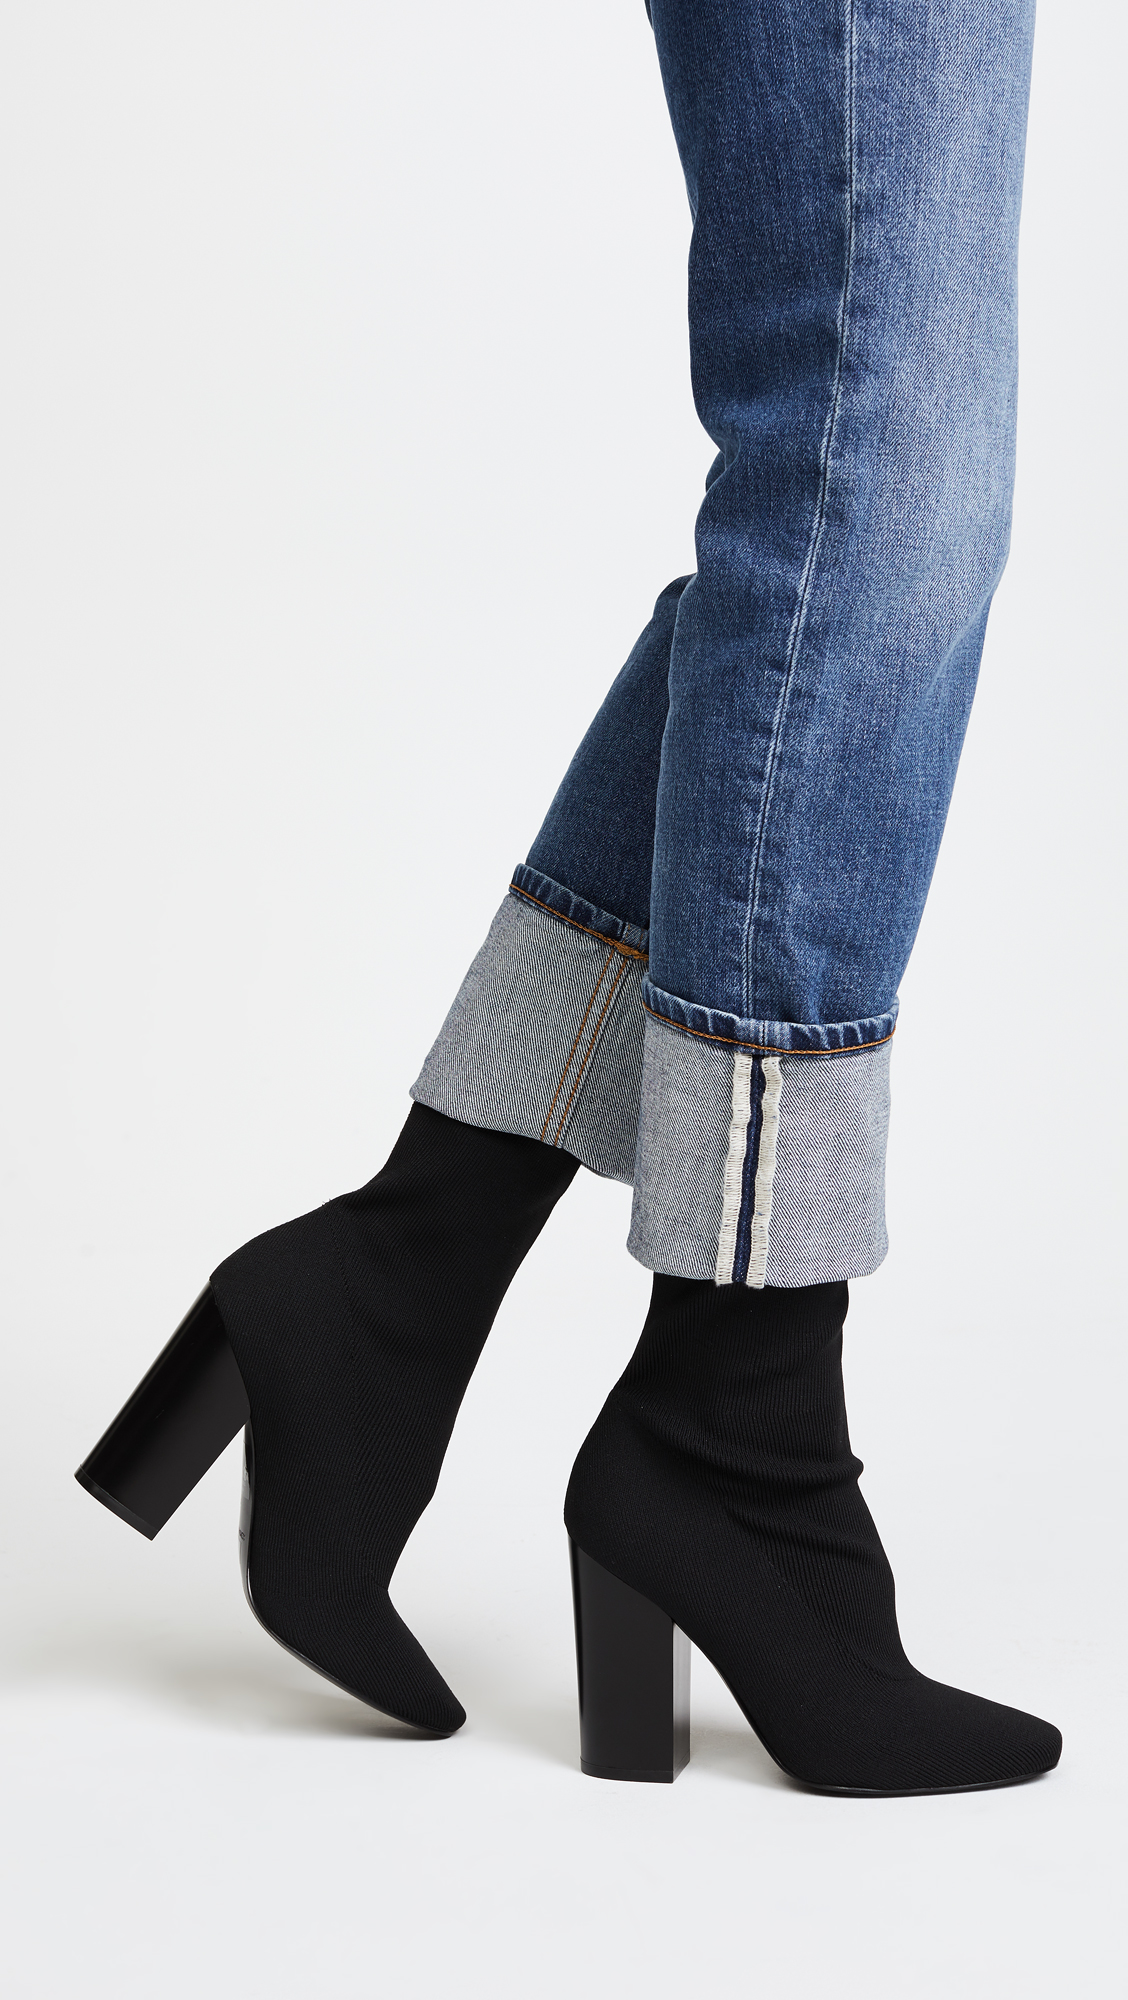 KENDALL + KYLIE Hailey Textile Booties BaGsJ